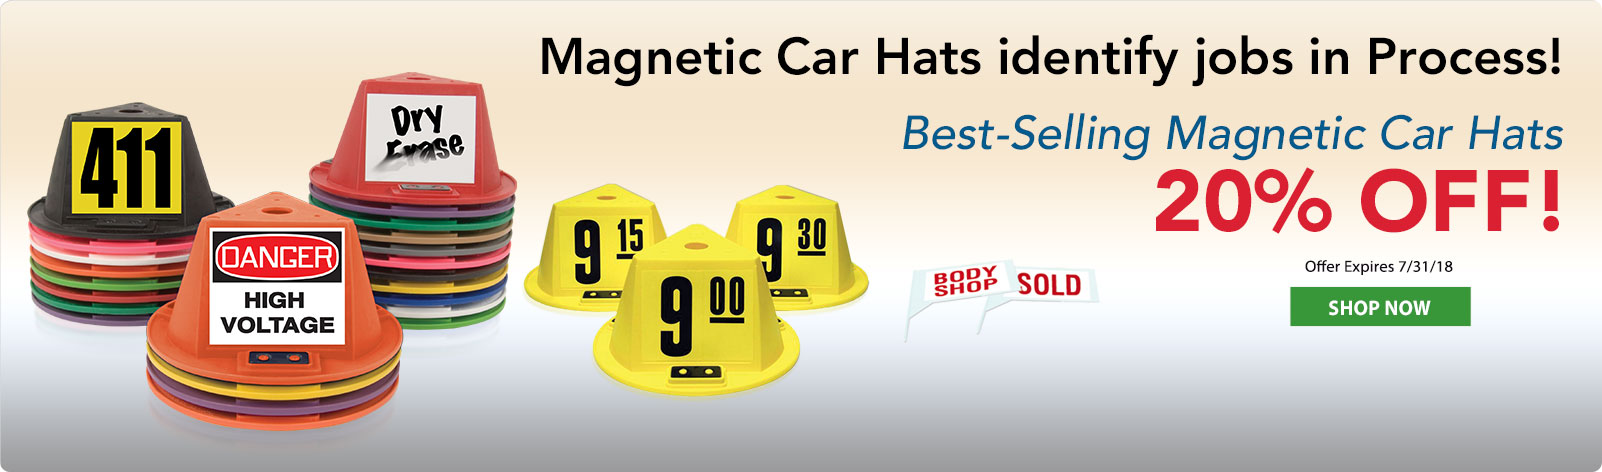 Magnetic Car Hats